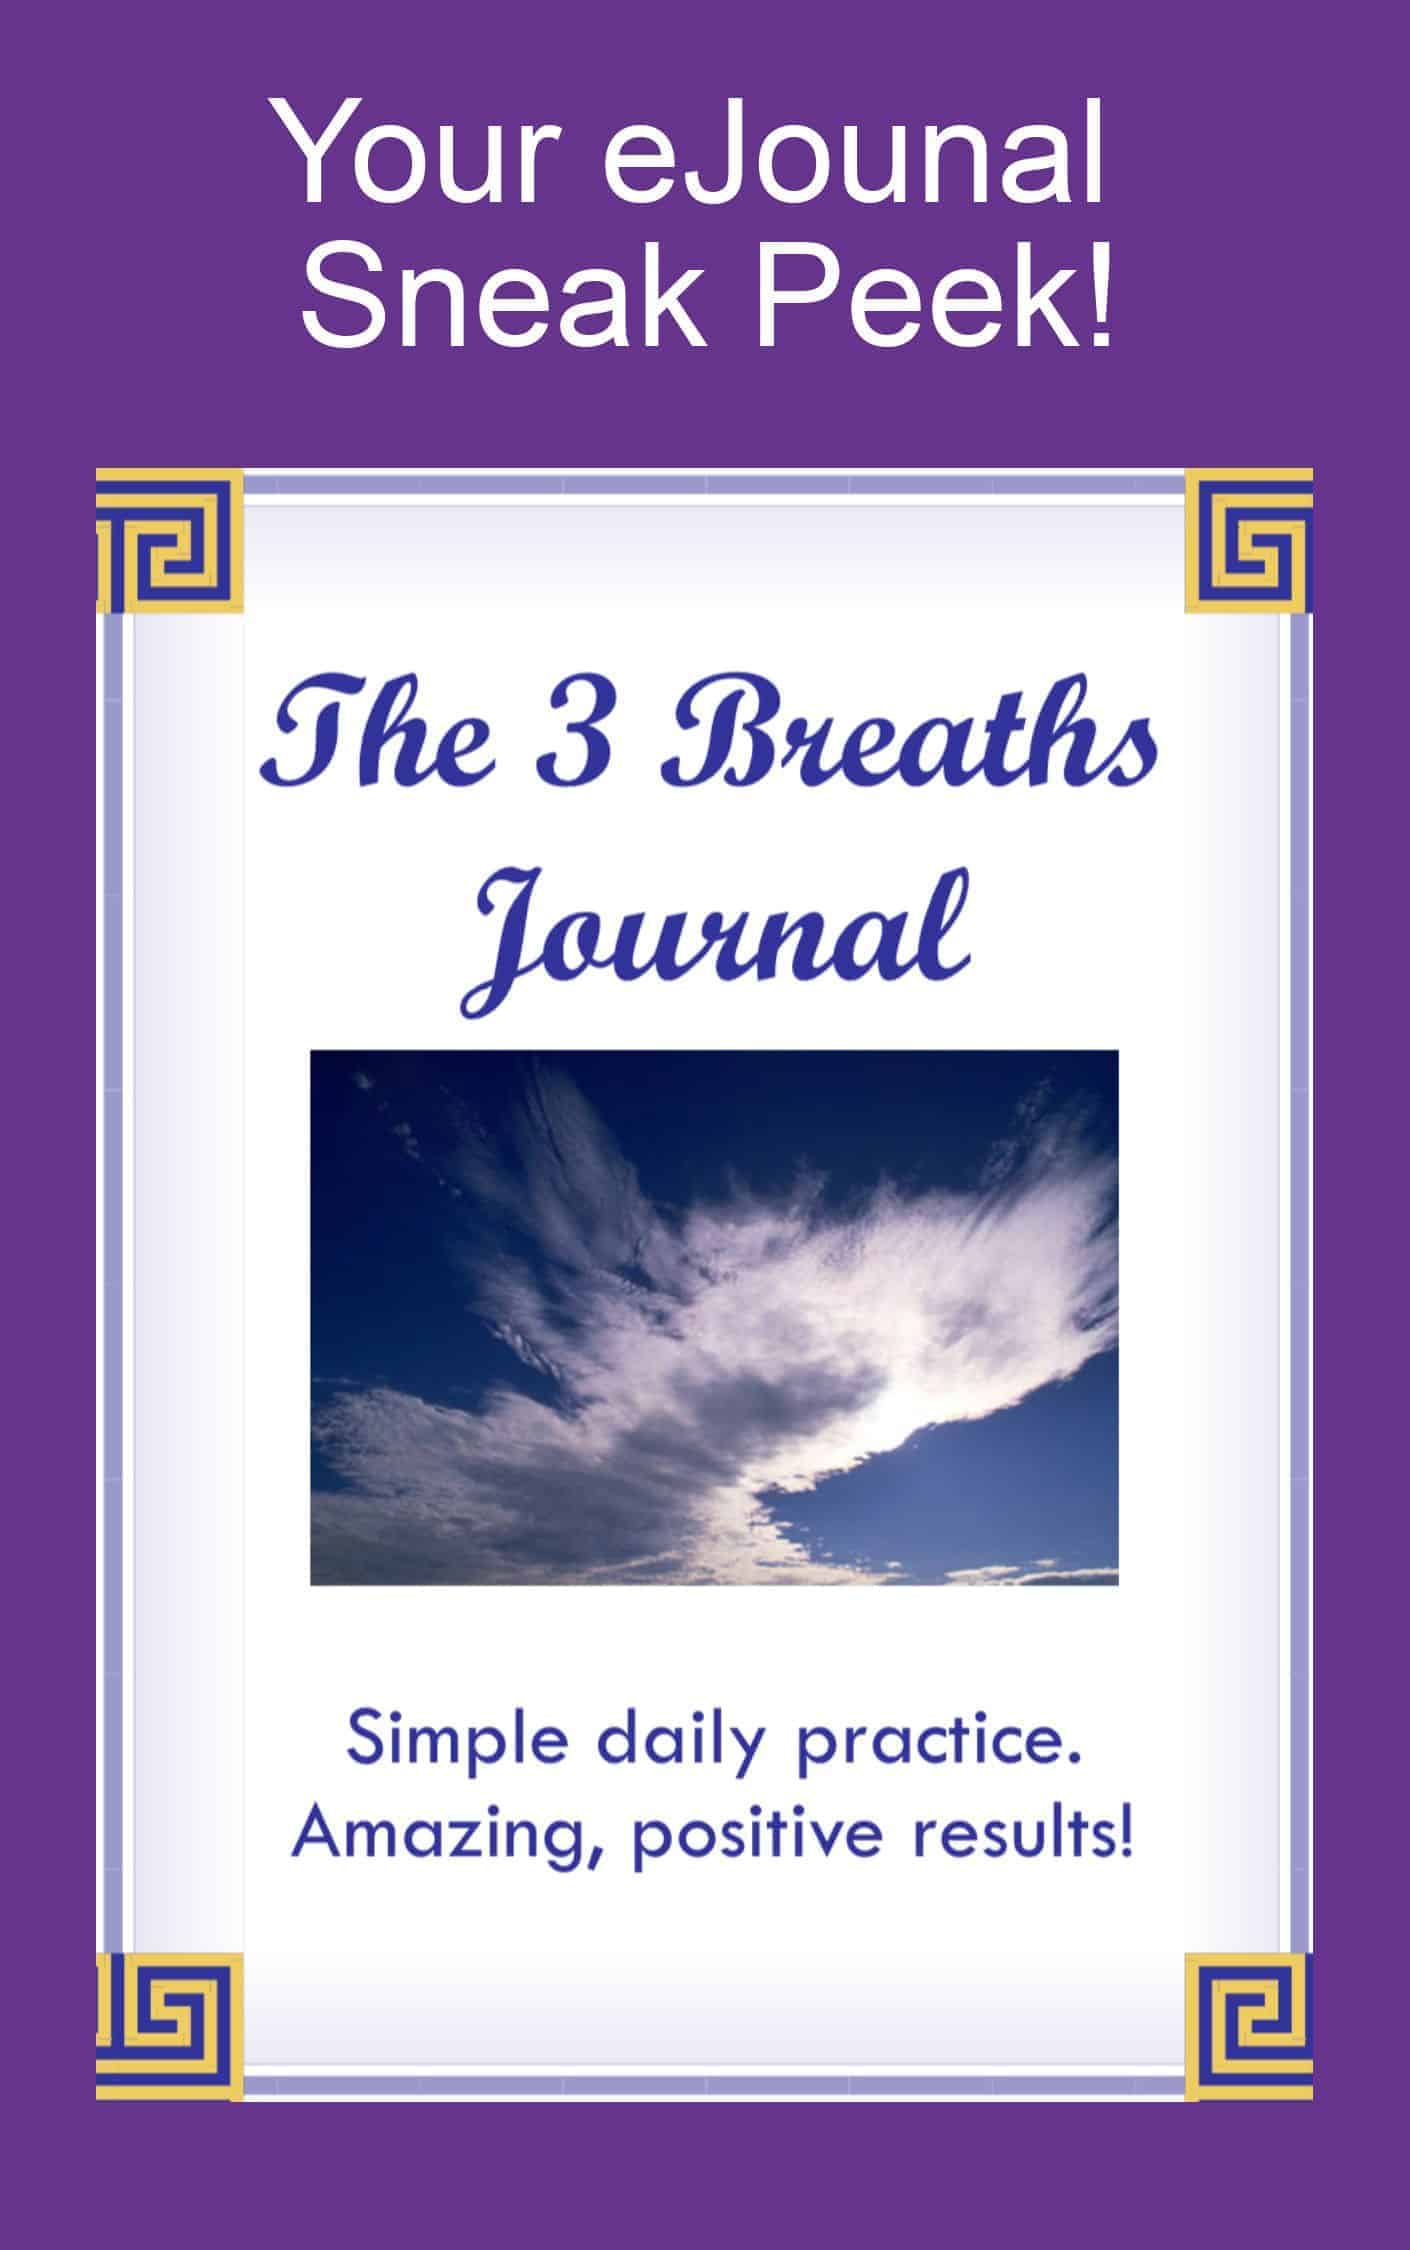 3 Breaths Mindfulness Journal Sneak Peak